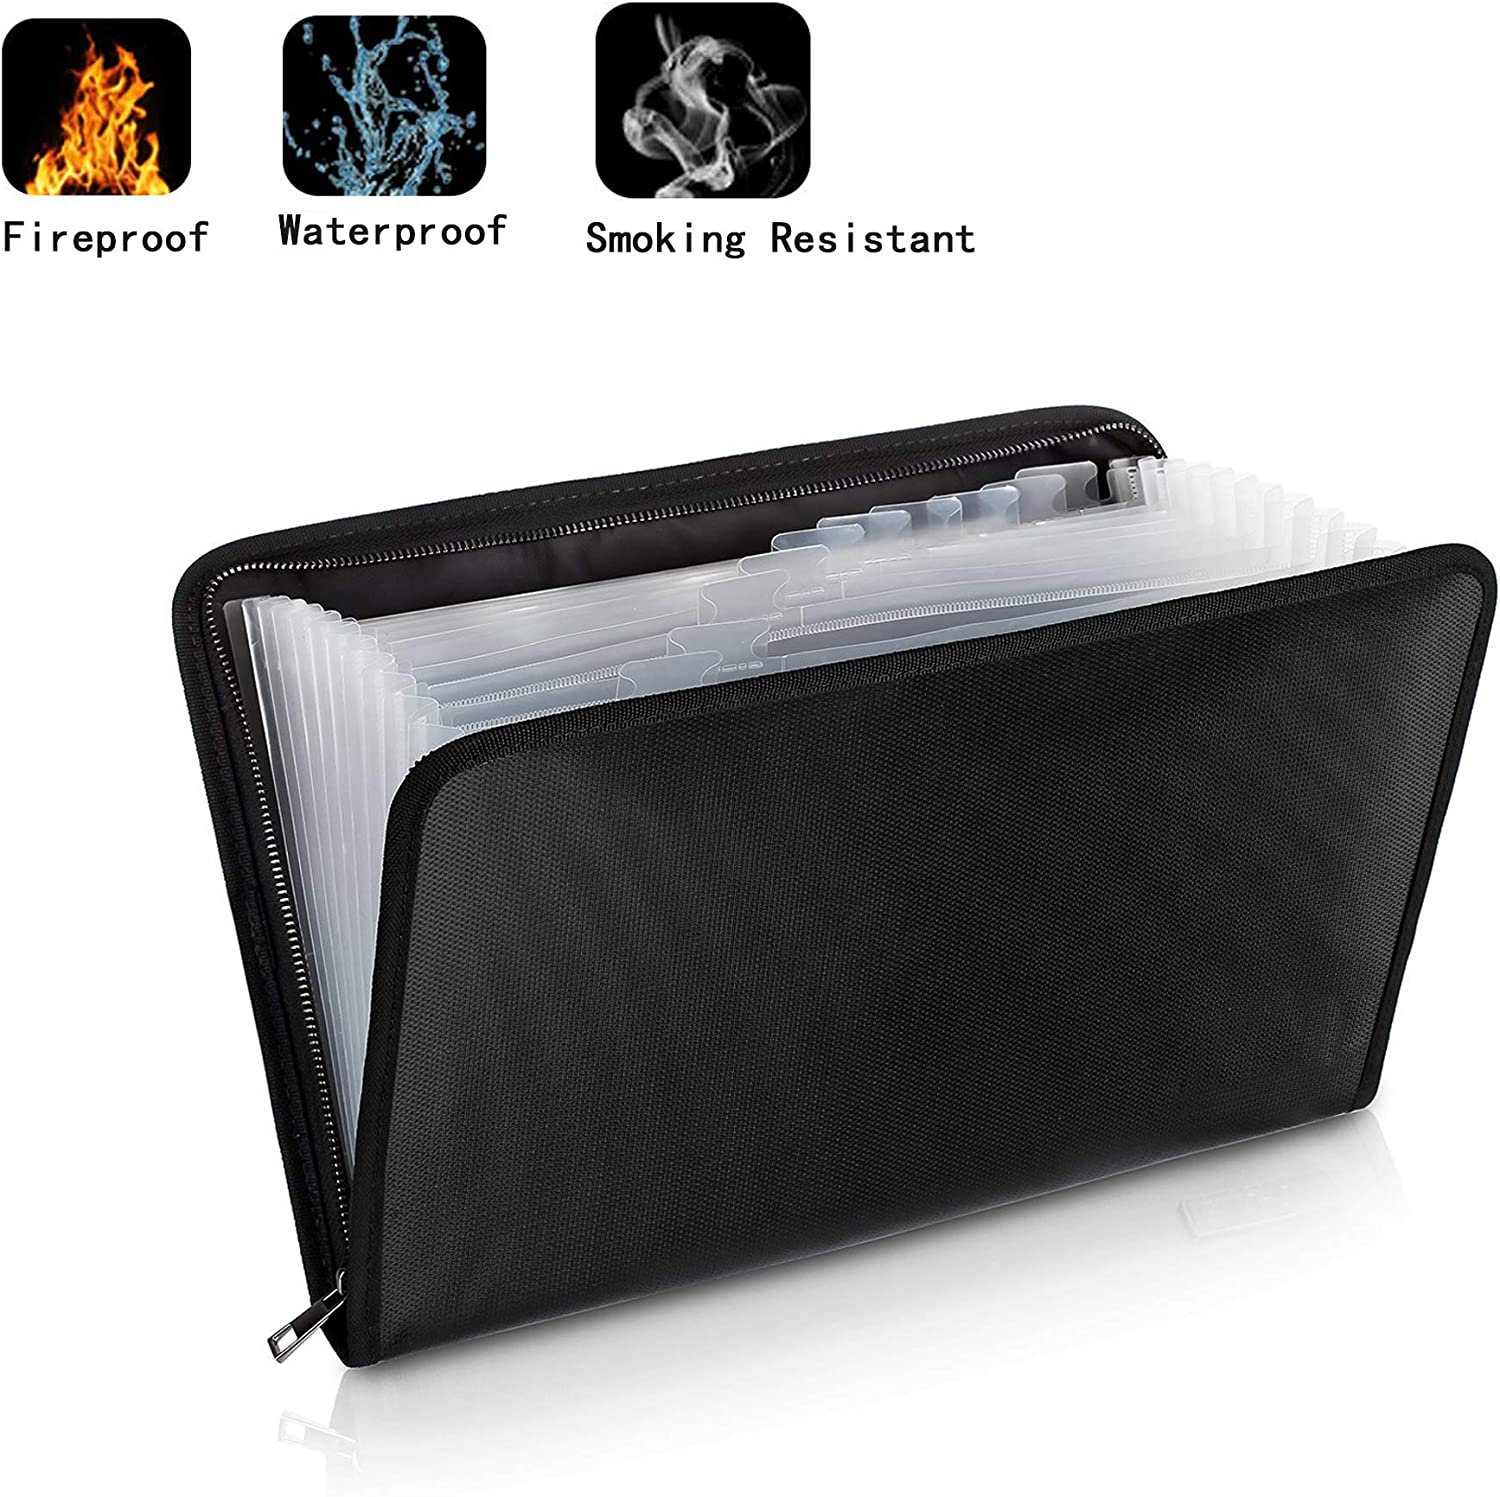 Hengfuntong-Elec Fireproof Document Bag, Fire Resistant Waterproof Bag Cash Money Passport Holder with Multi Pockets Zipper Closure Non-Itchy Silicone Coated for Maximum Protection Black